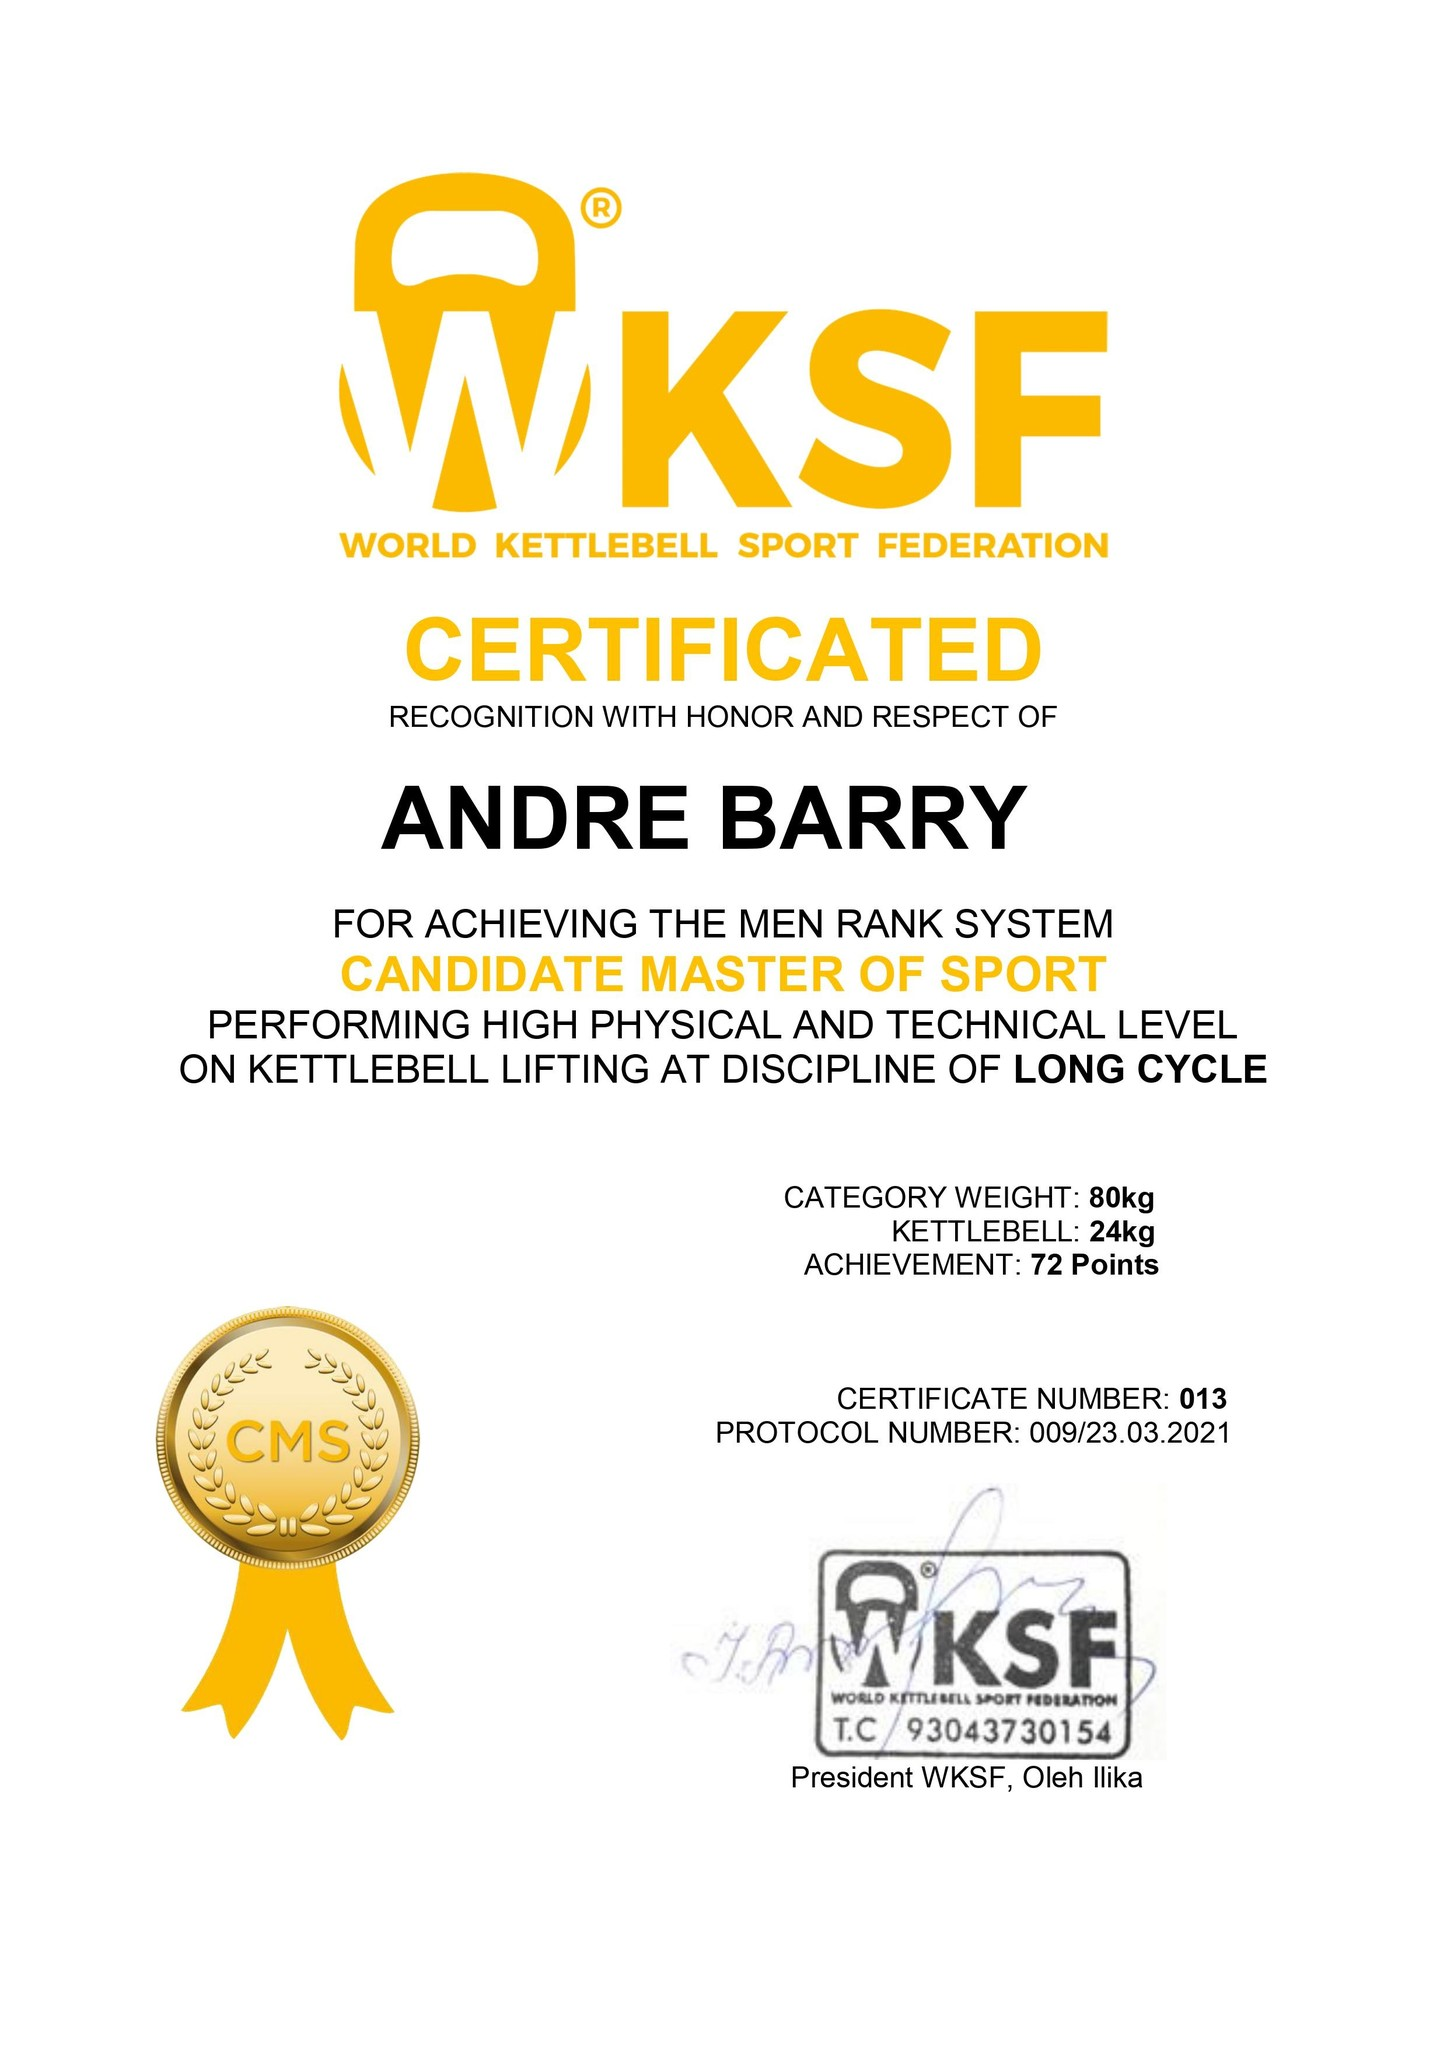 Candidate Master of Sport for LongCycle – Barry Andre